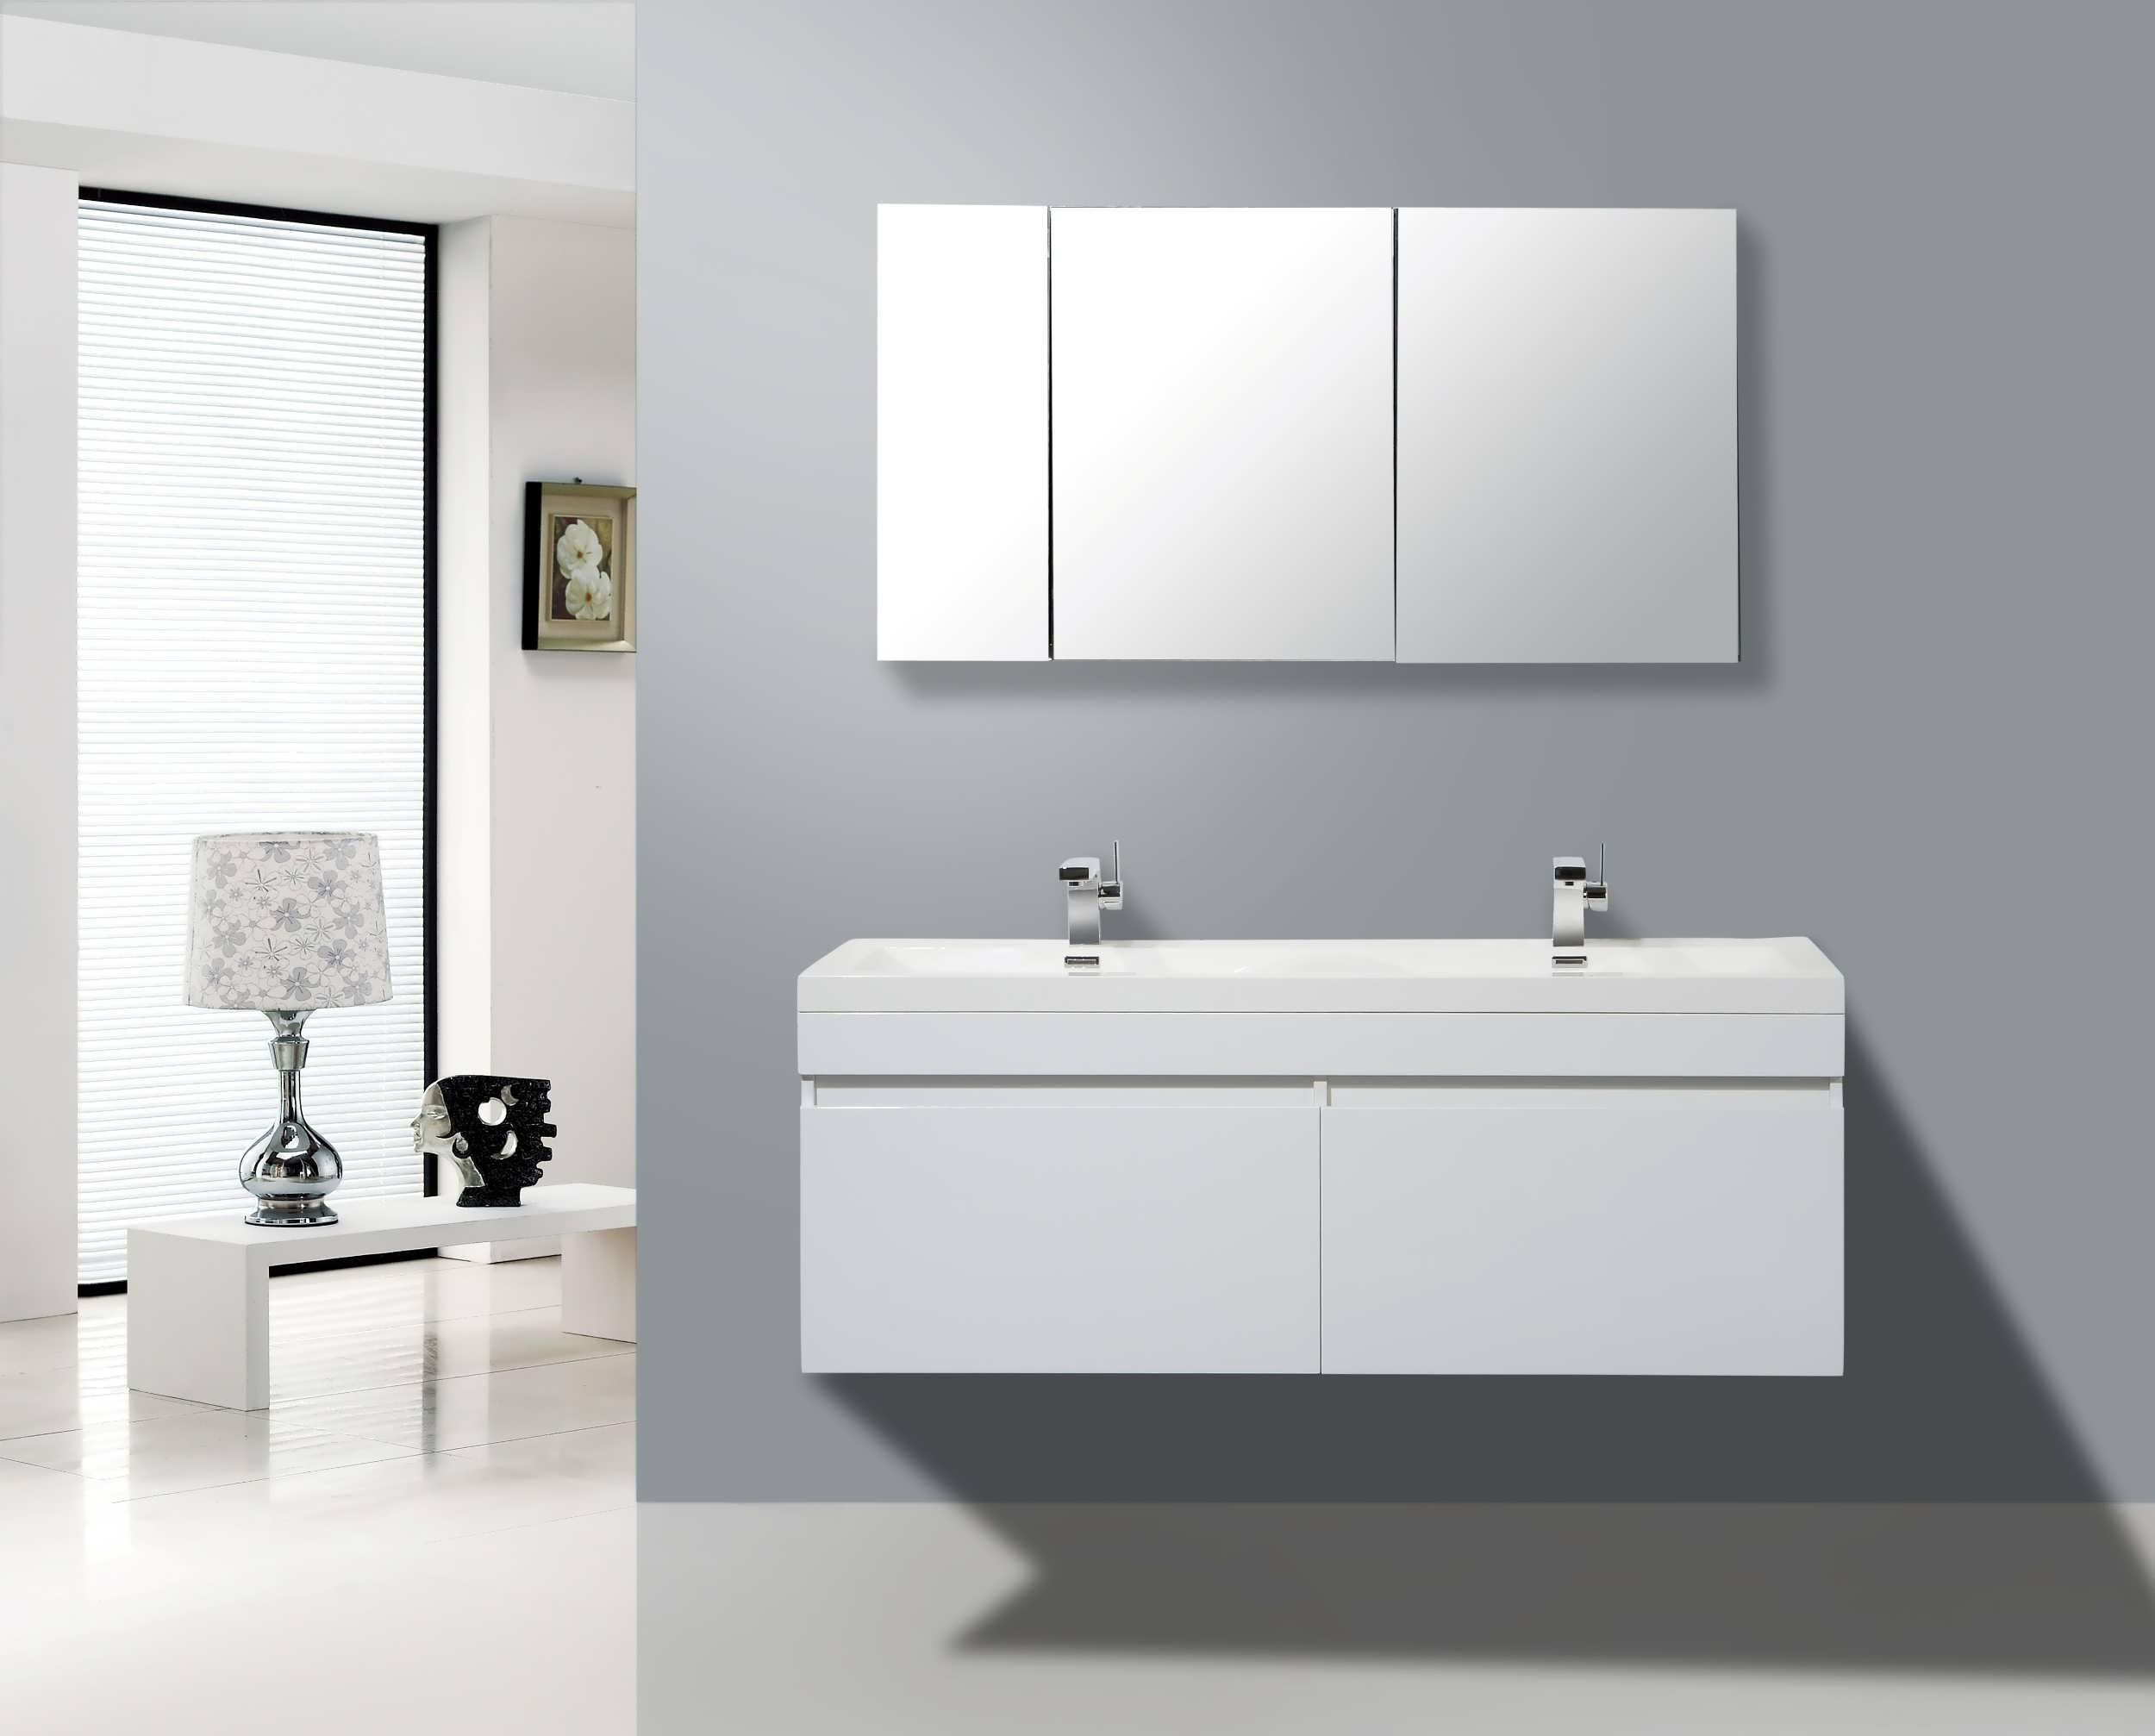 Bathroom : Vanity Mirror Bathroom Vanity Bathroom Mirrors Modern For Large Illuminated Mirror (Image 5 of 20)